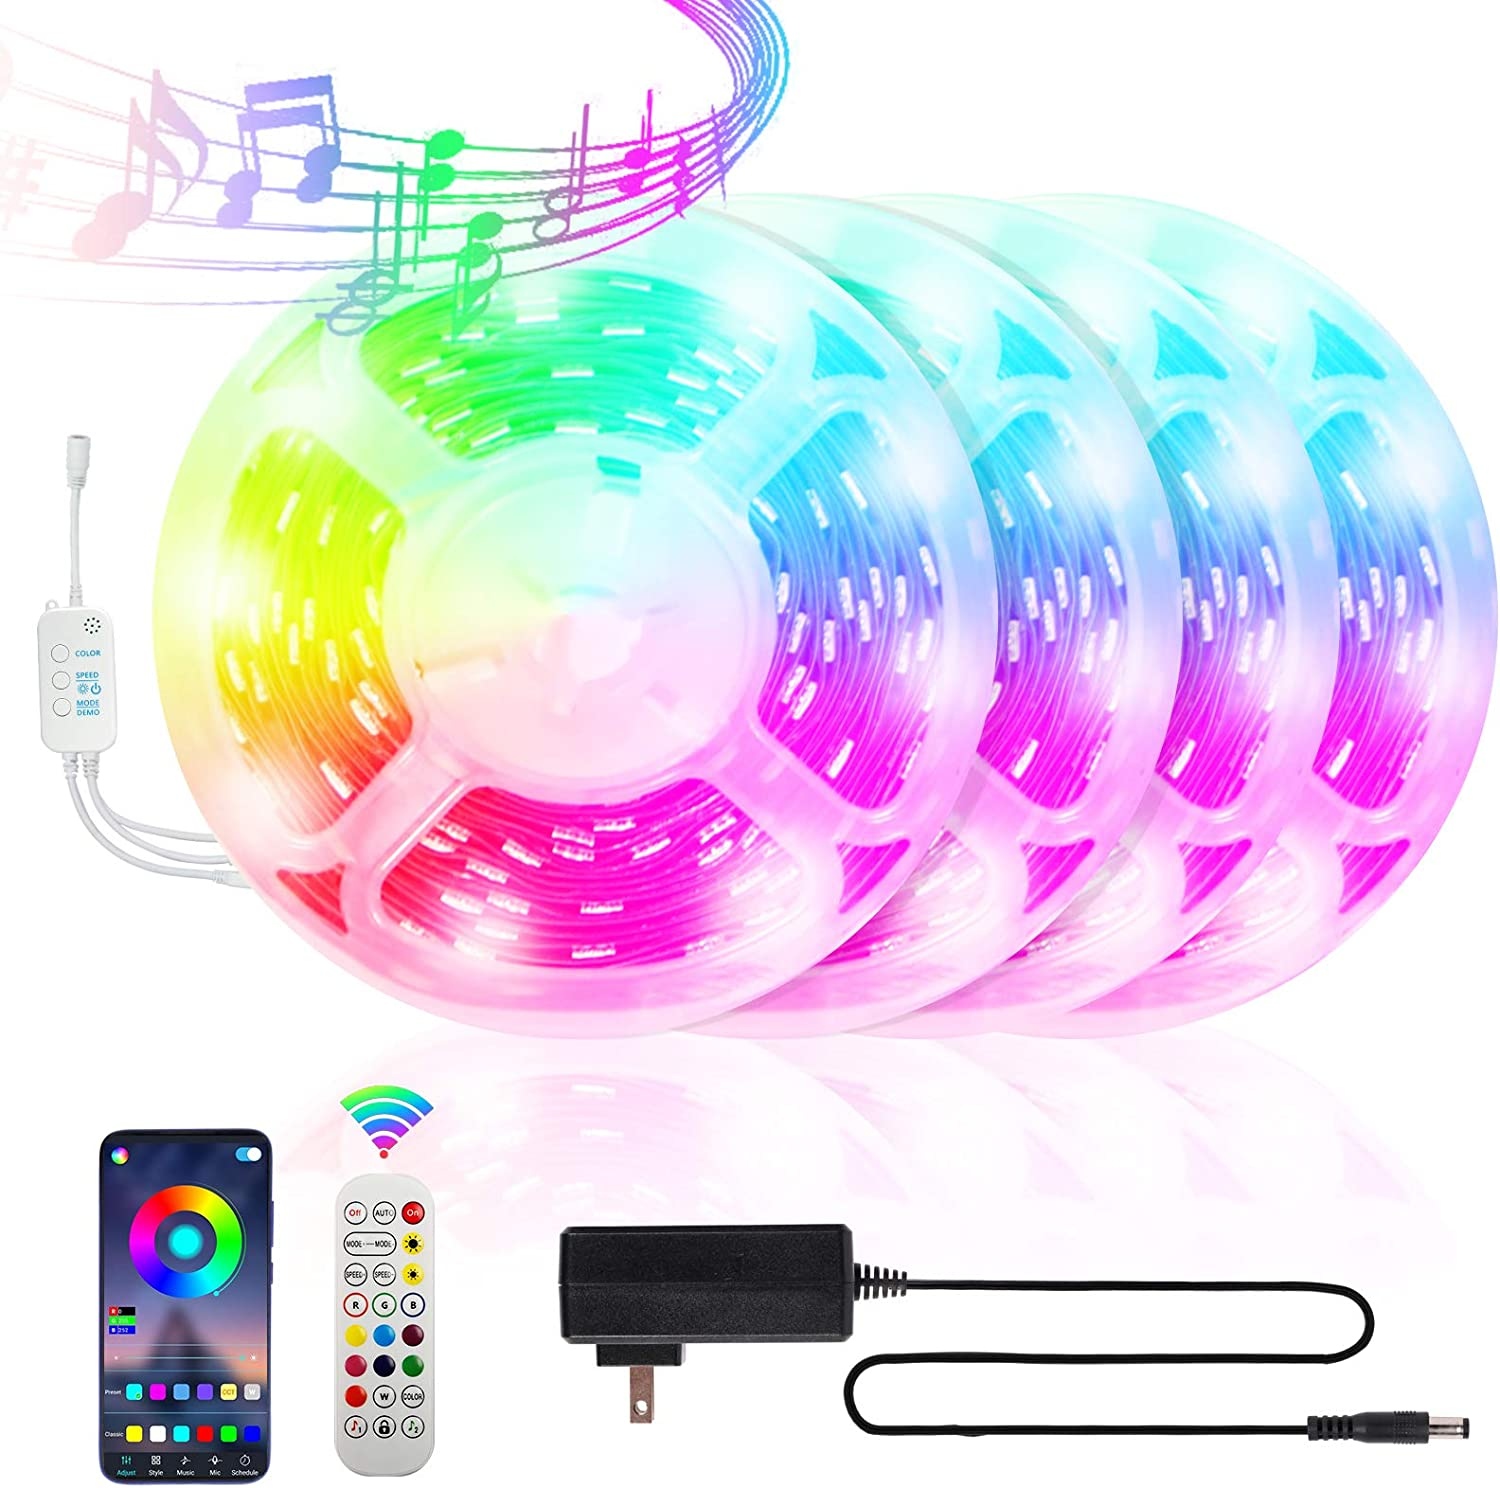 JEKKIS 65.6FT/20M RGB LED Strip Lights, 360 5050 SMD Color Changing LEDs, Music Sync Bluetooth Controller + 24 Key Remote LED Lights for Bedroom Room Home Party (4x16.4FT)